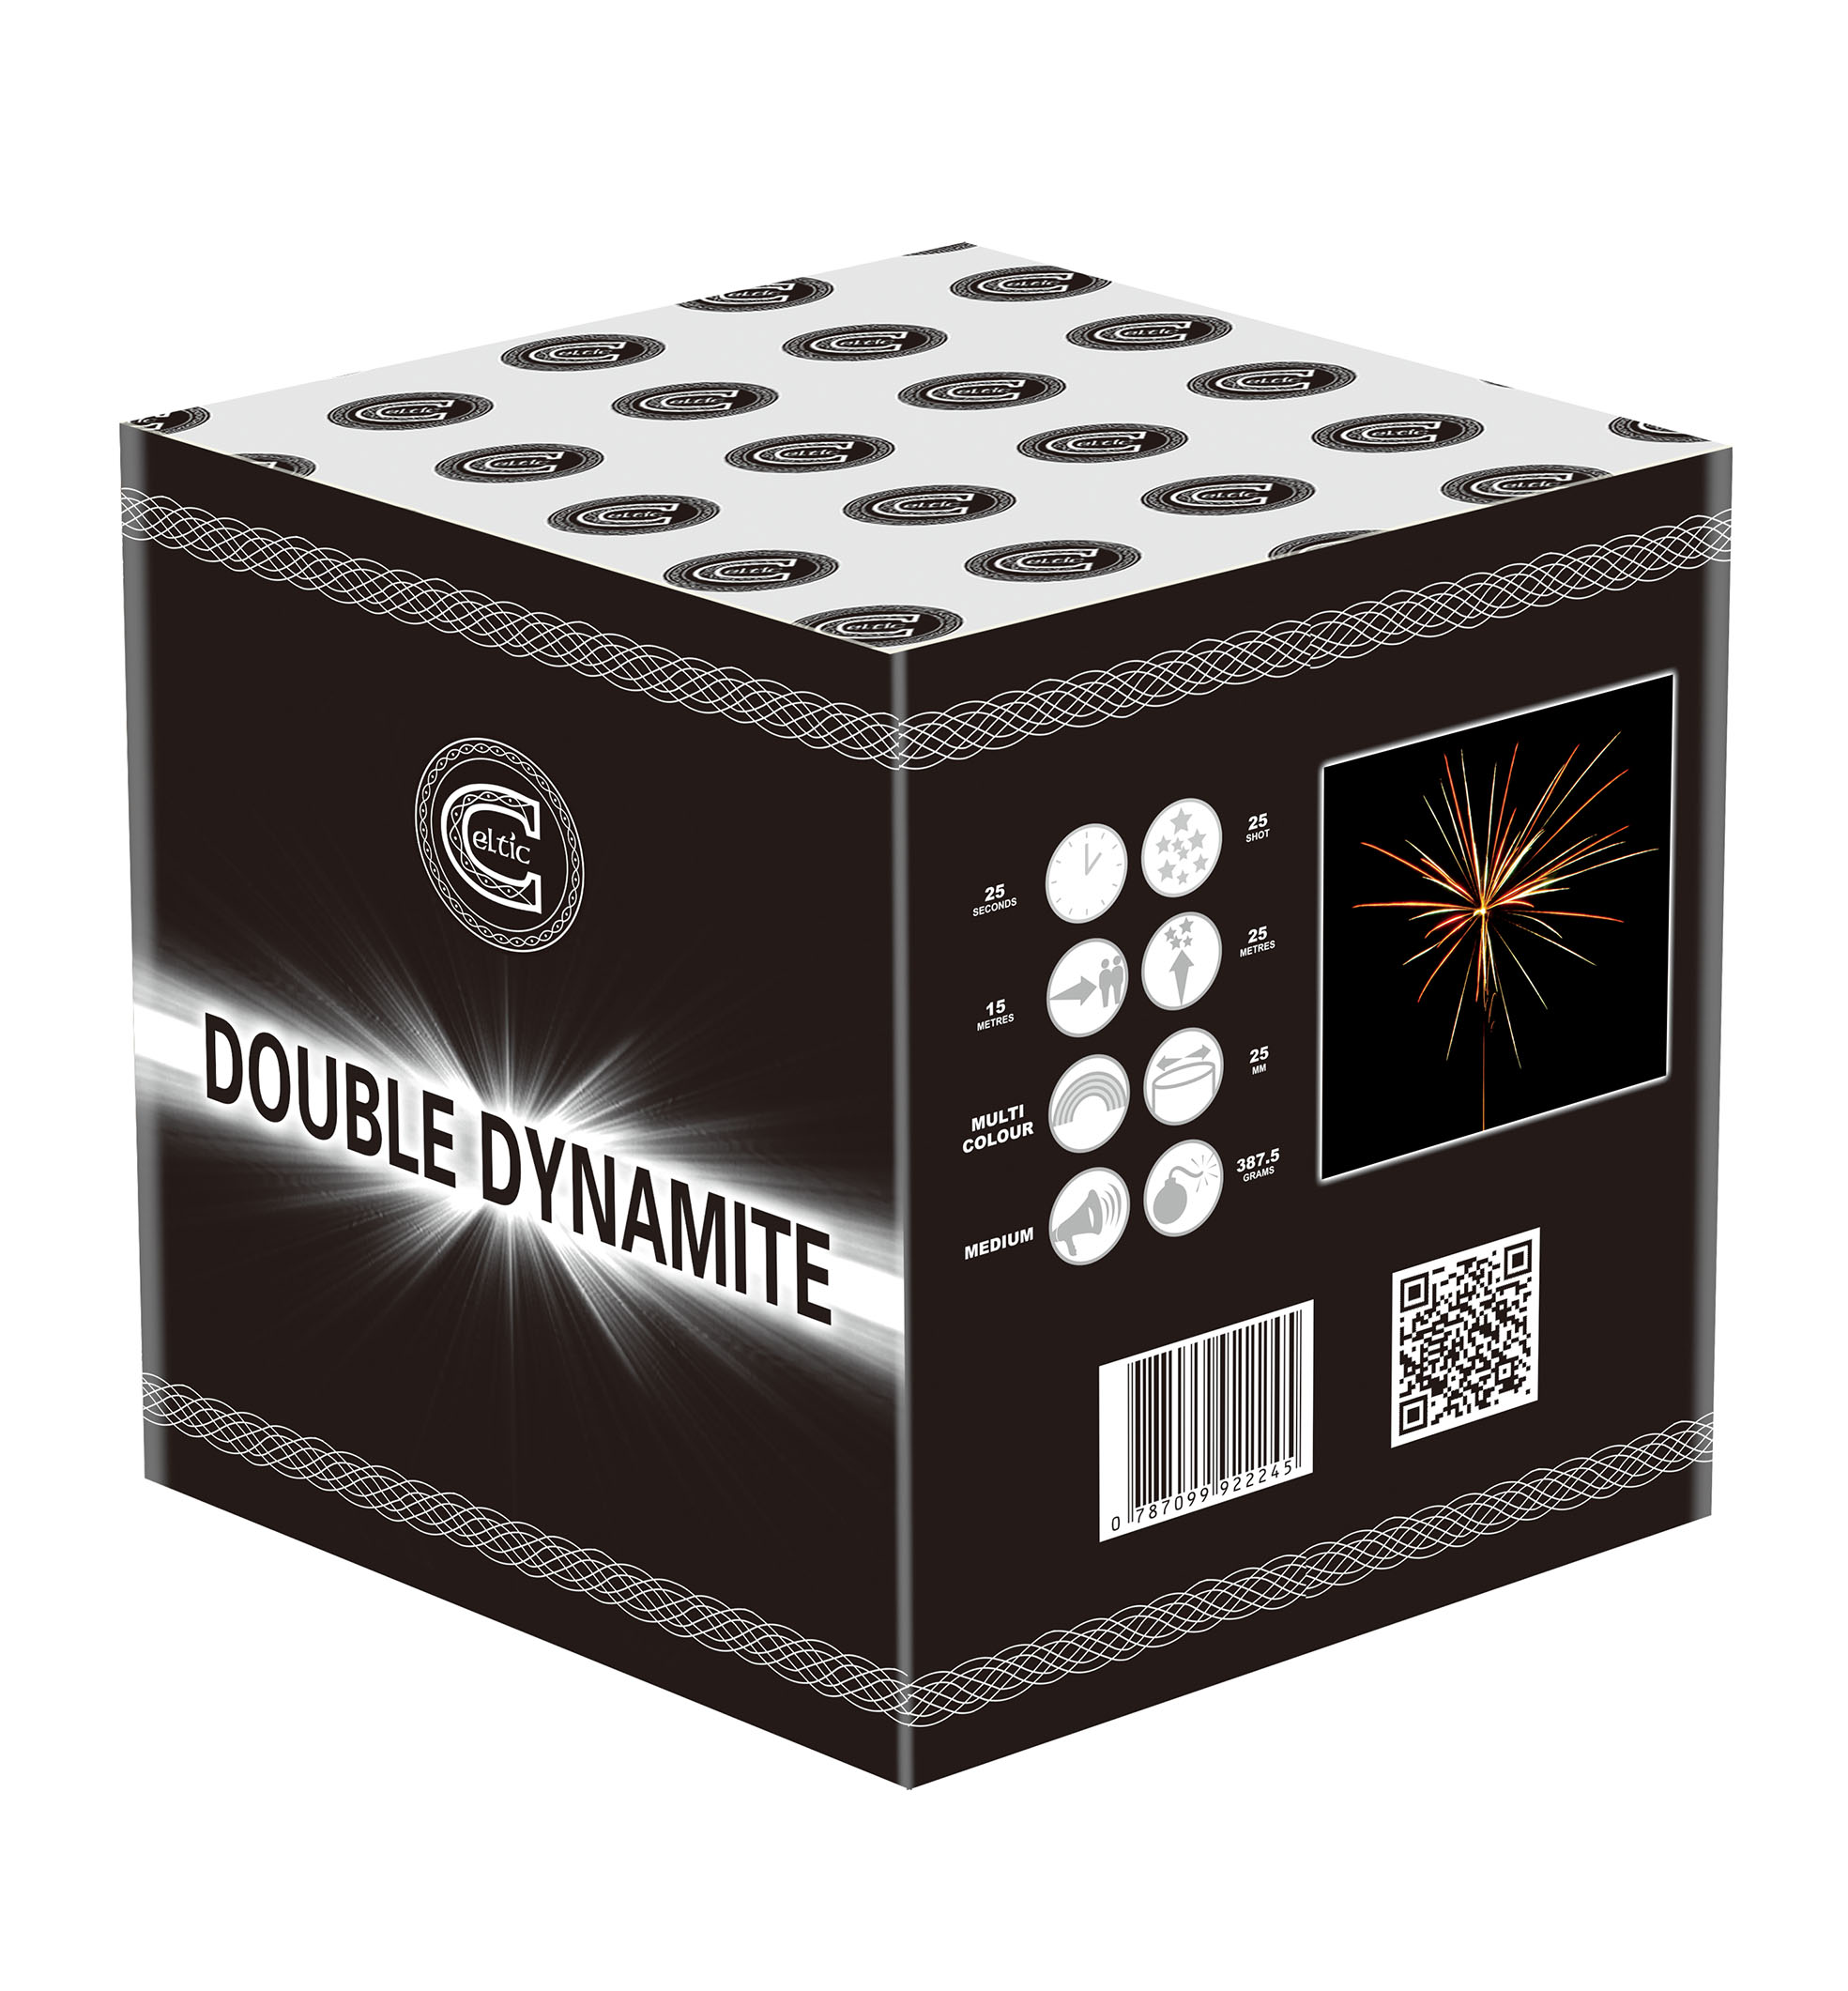 Double Dynamite By Celtic Fireworks